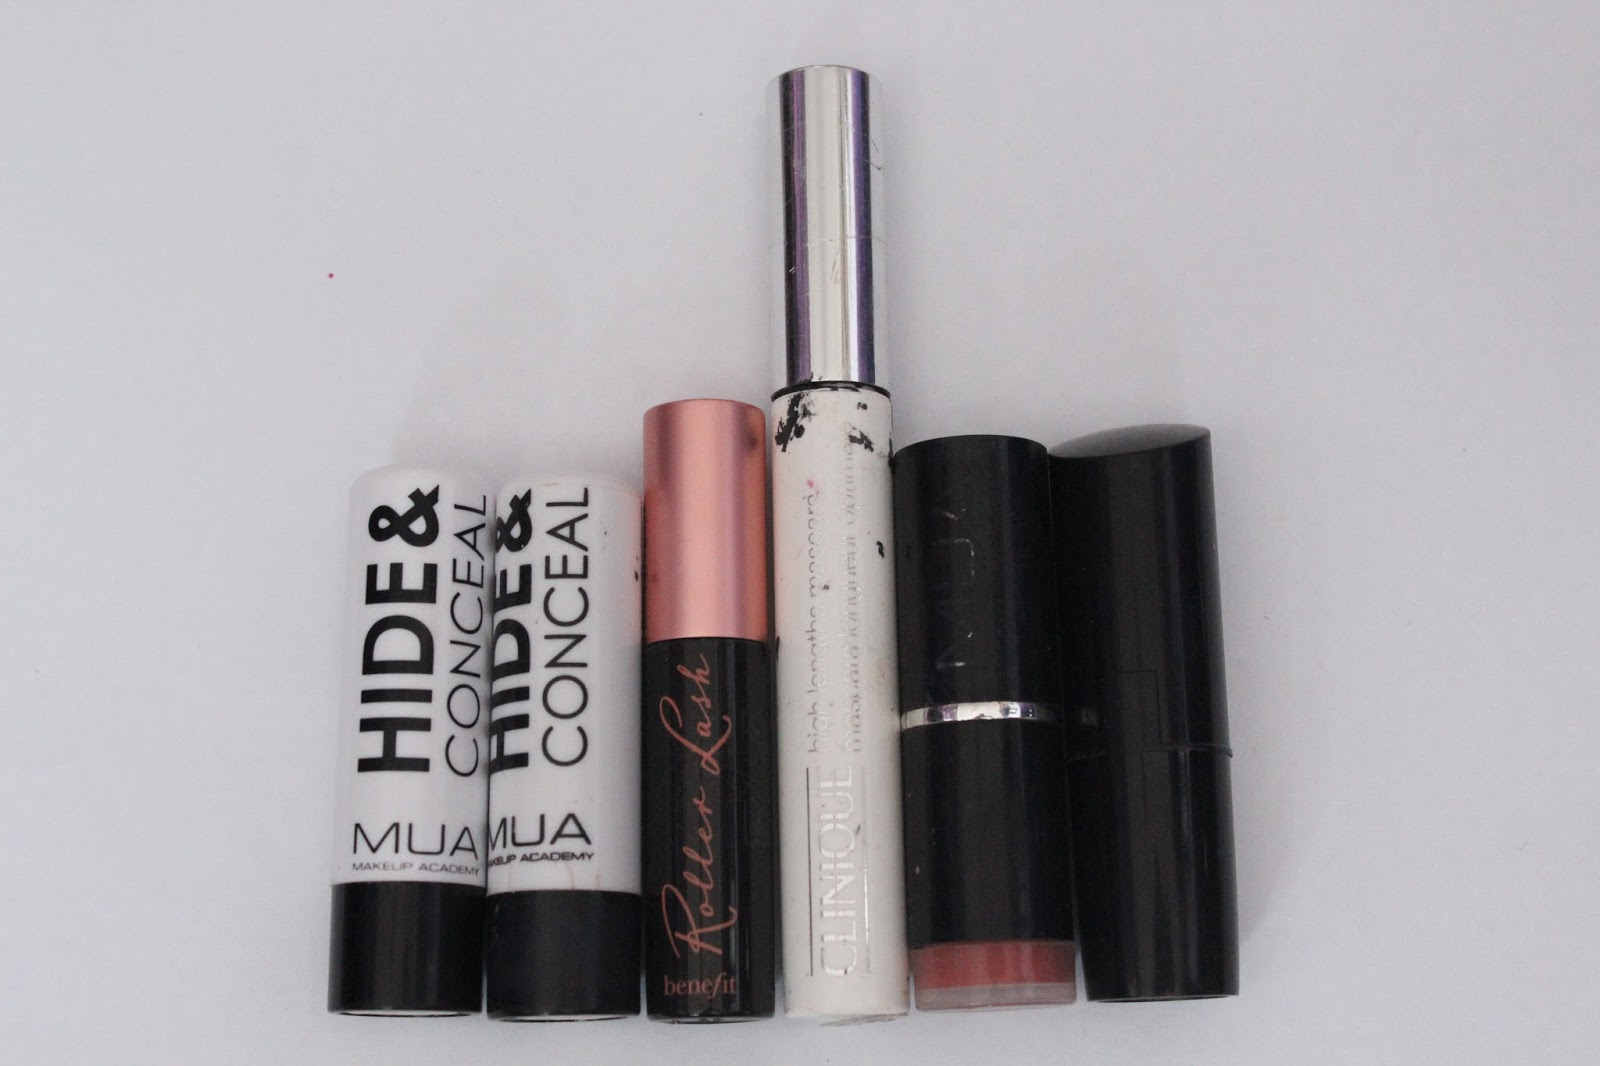 a8a1c7c9d03 All of these products needed throwing out. The MUA concealer is my  favourite ever, and I have repurchased it time after time, and it's only £1!